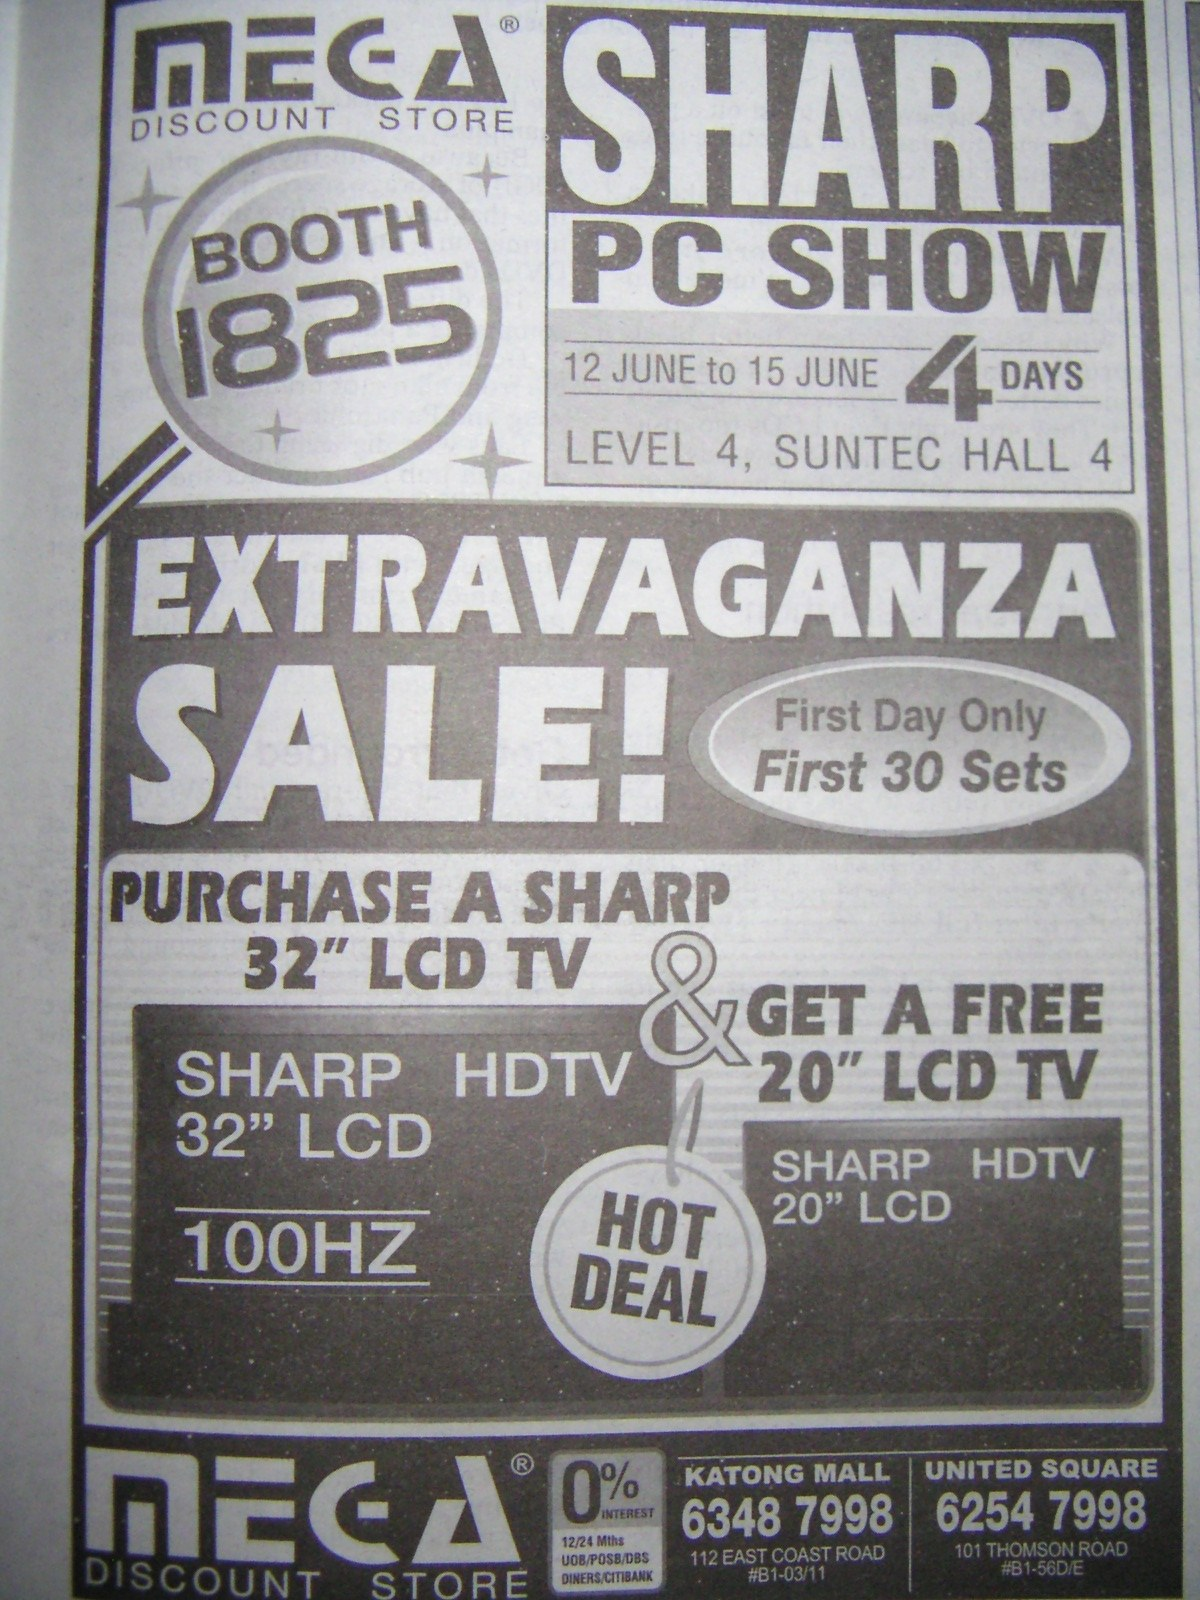 PC Show 2008 price list image brochure of Mega Discount Store